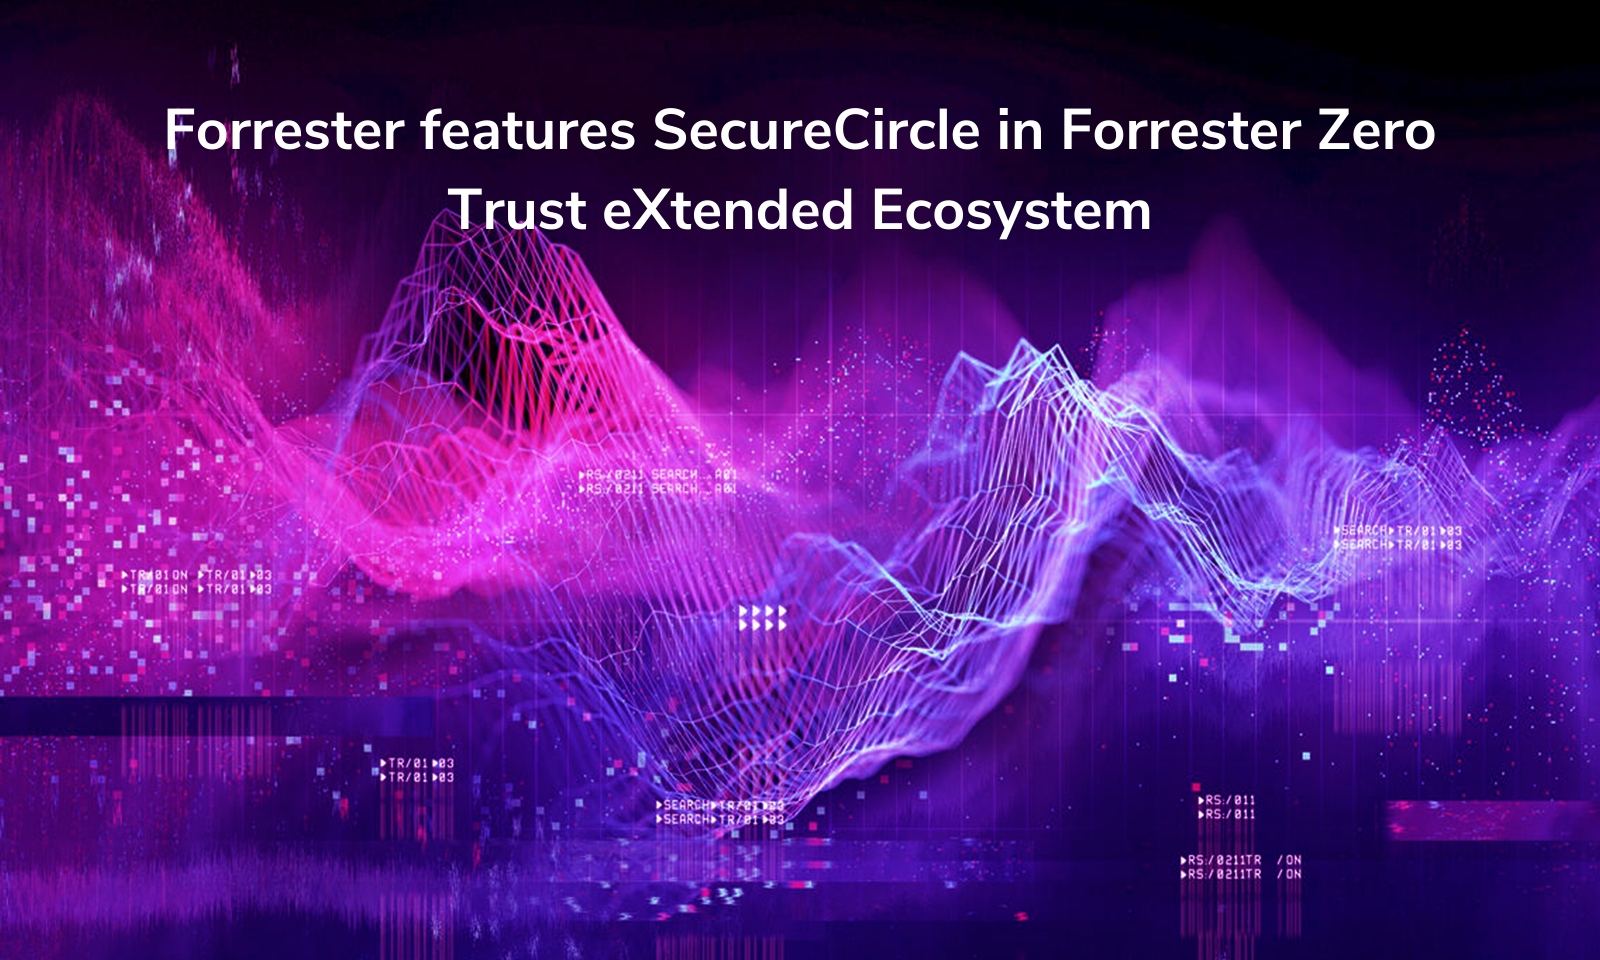 Forrester features SecureCircle in Forrester Zero Trust eXtended Ecosystem